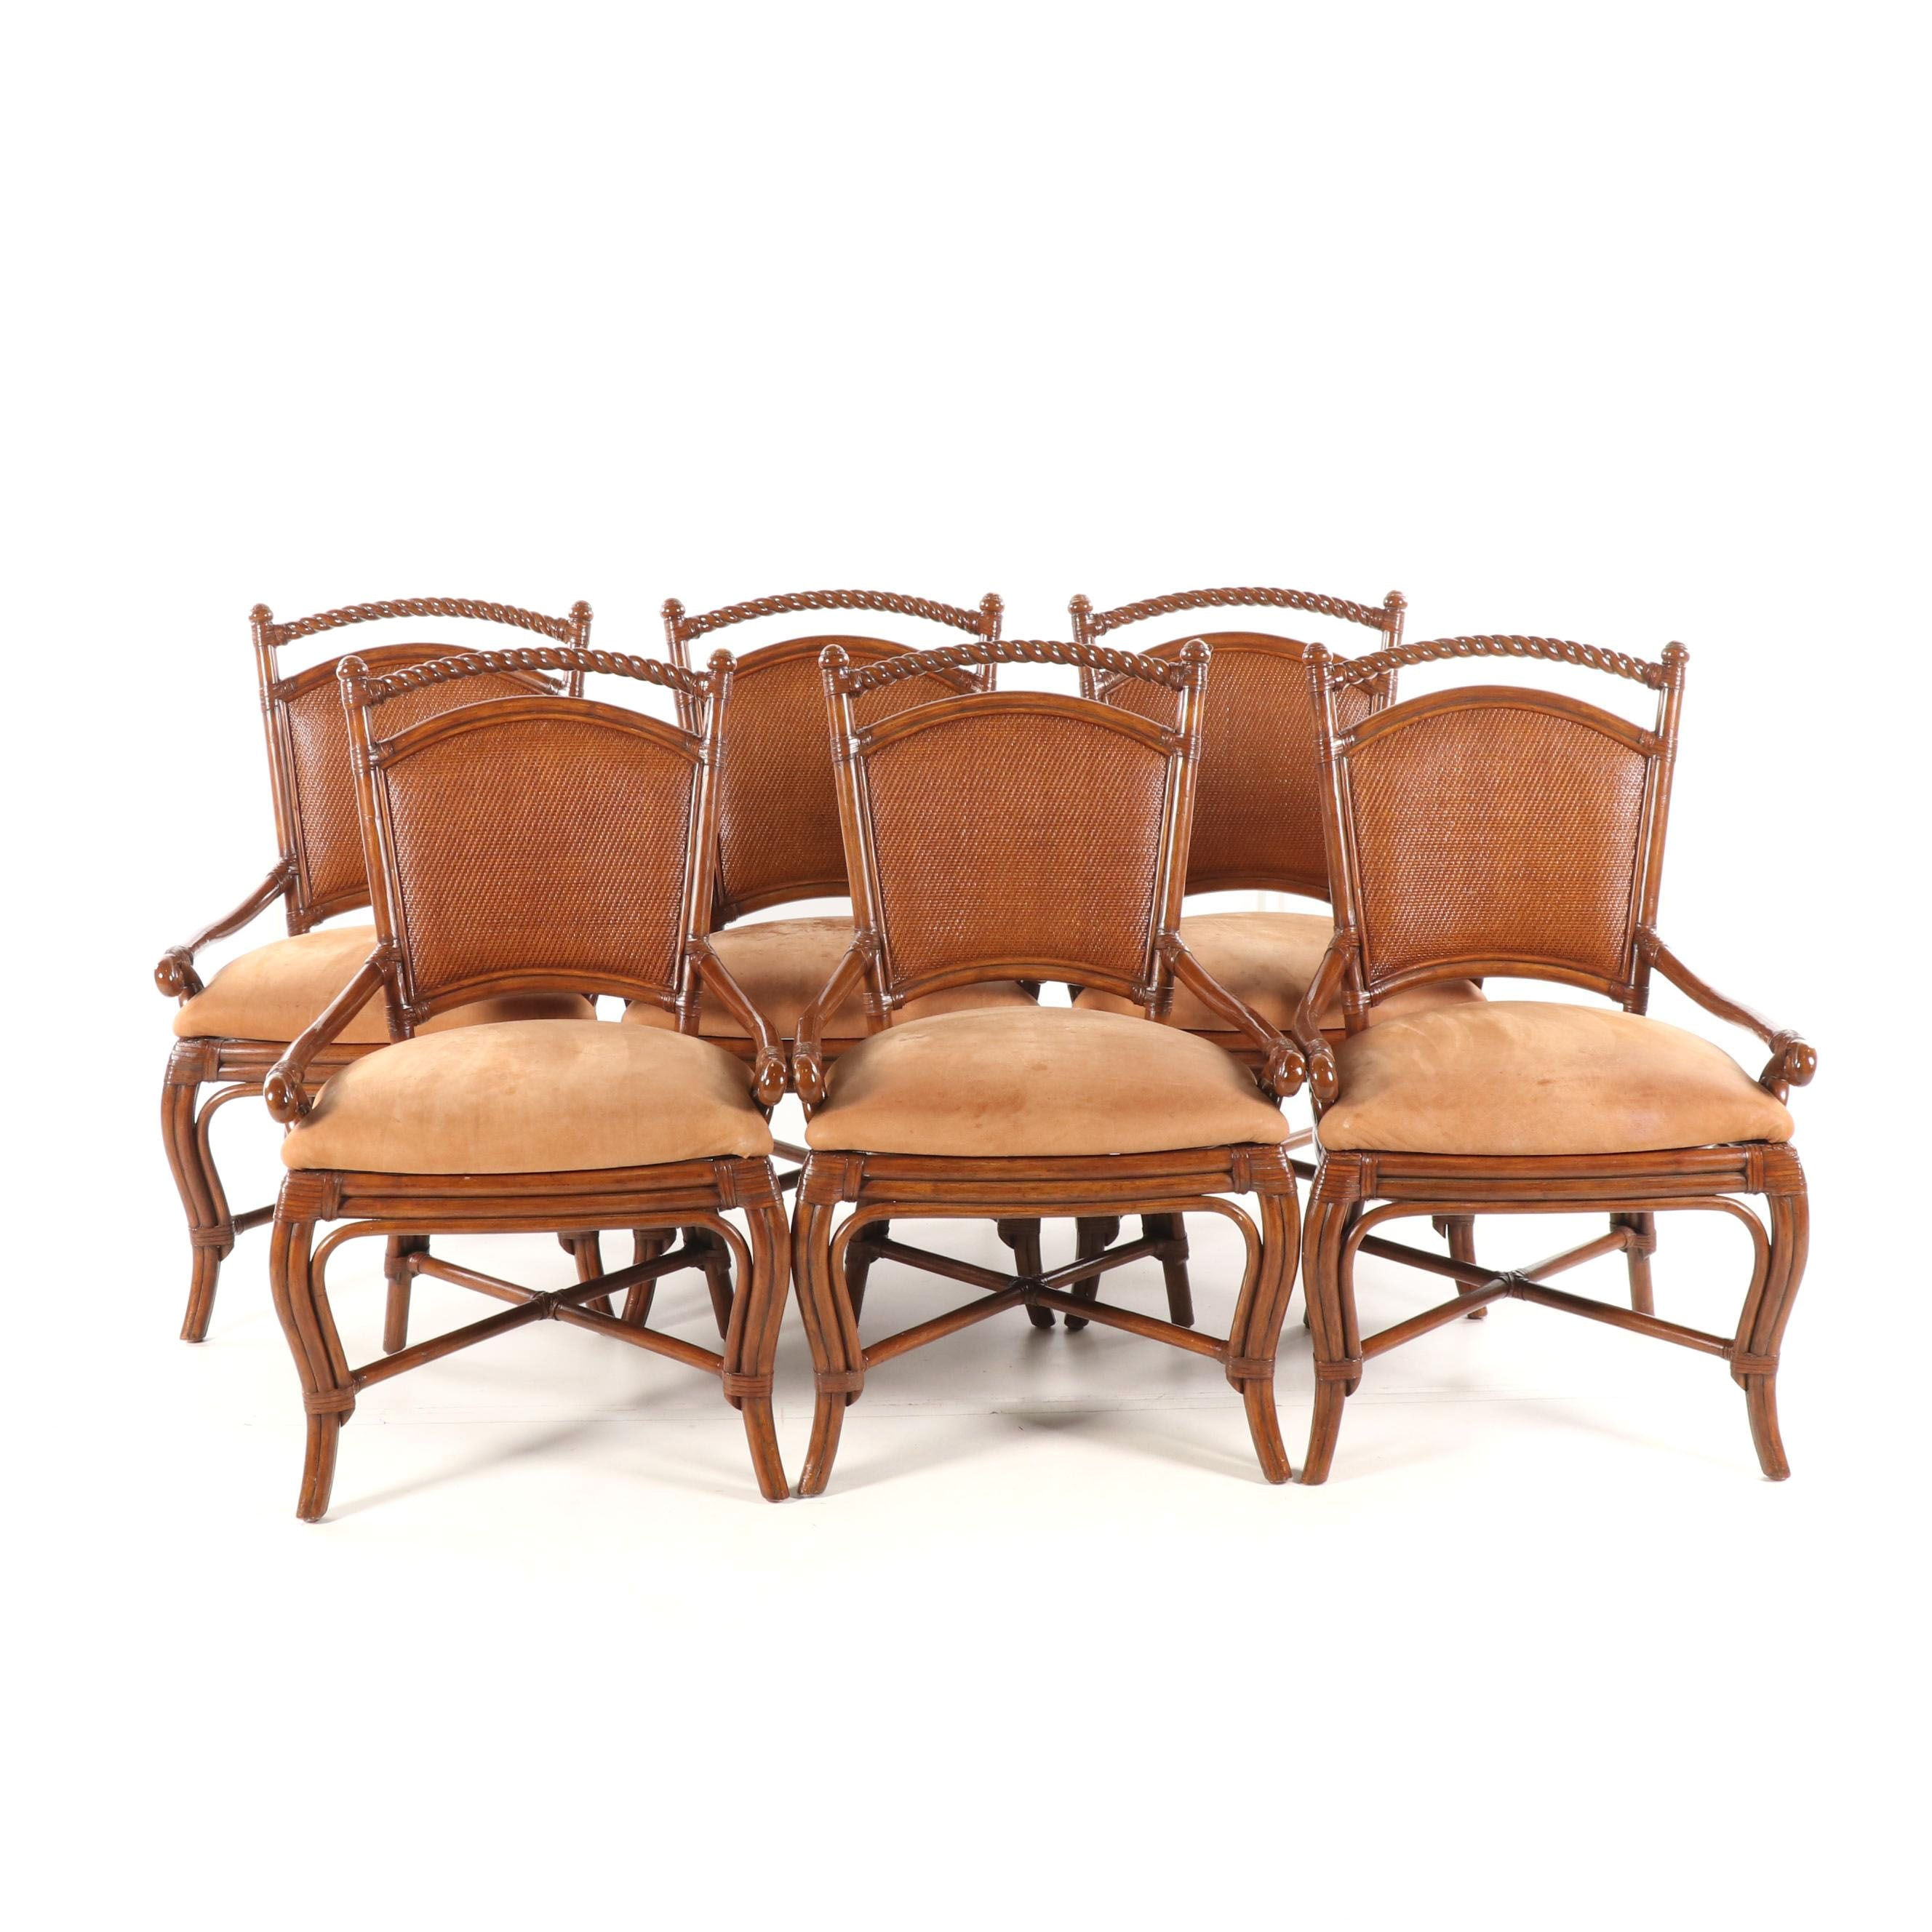 Faux Bamboo and Rattan Dining Chairs by Palecek, 21st Century